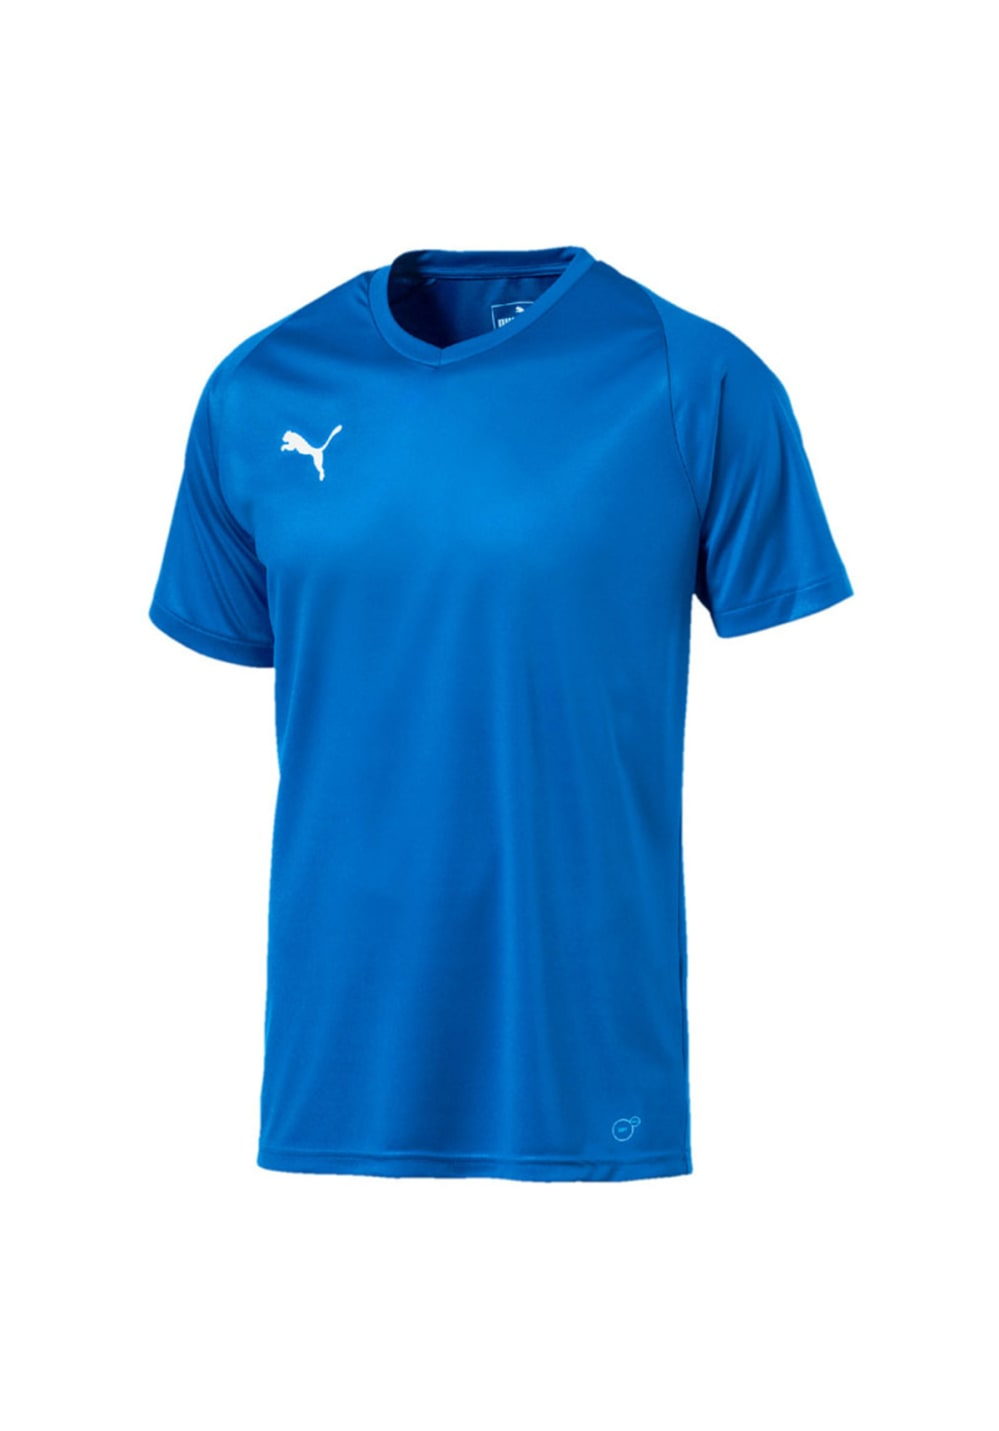 f6df553a9796 ... Puma Liga Jersey Core - Running tops for Men - Blue. Back to Overview.  -50%